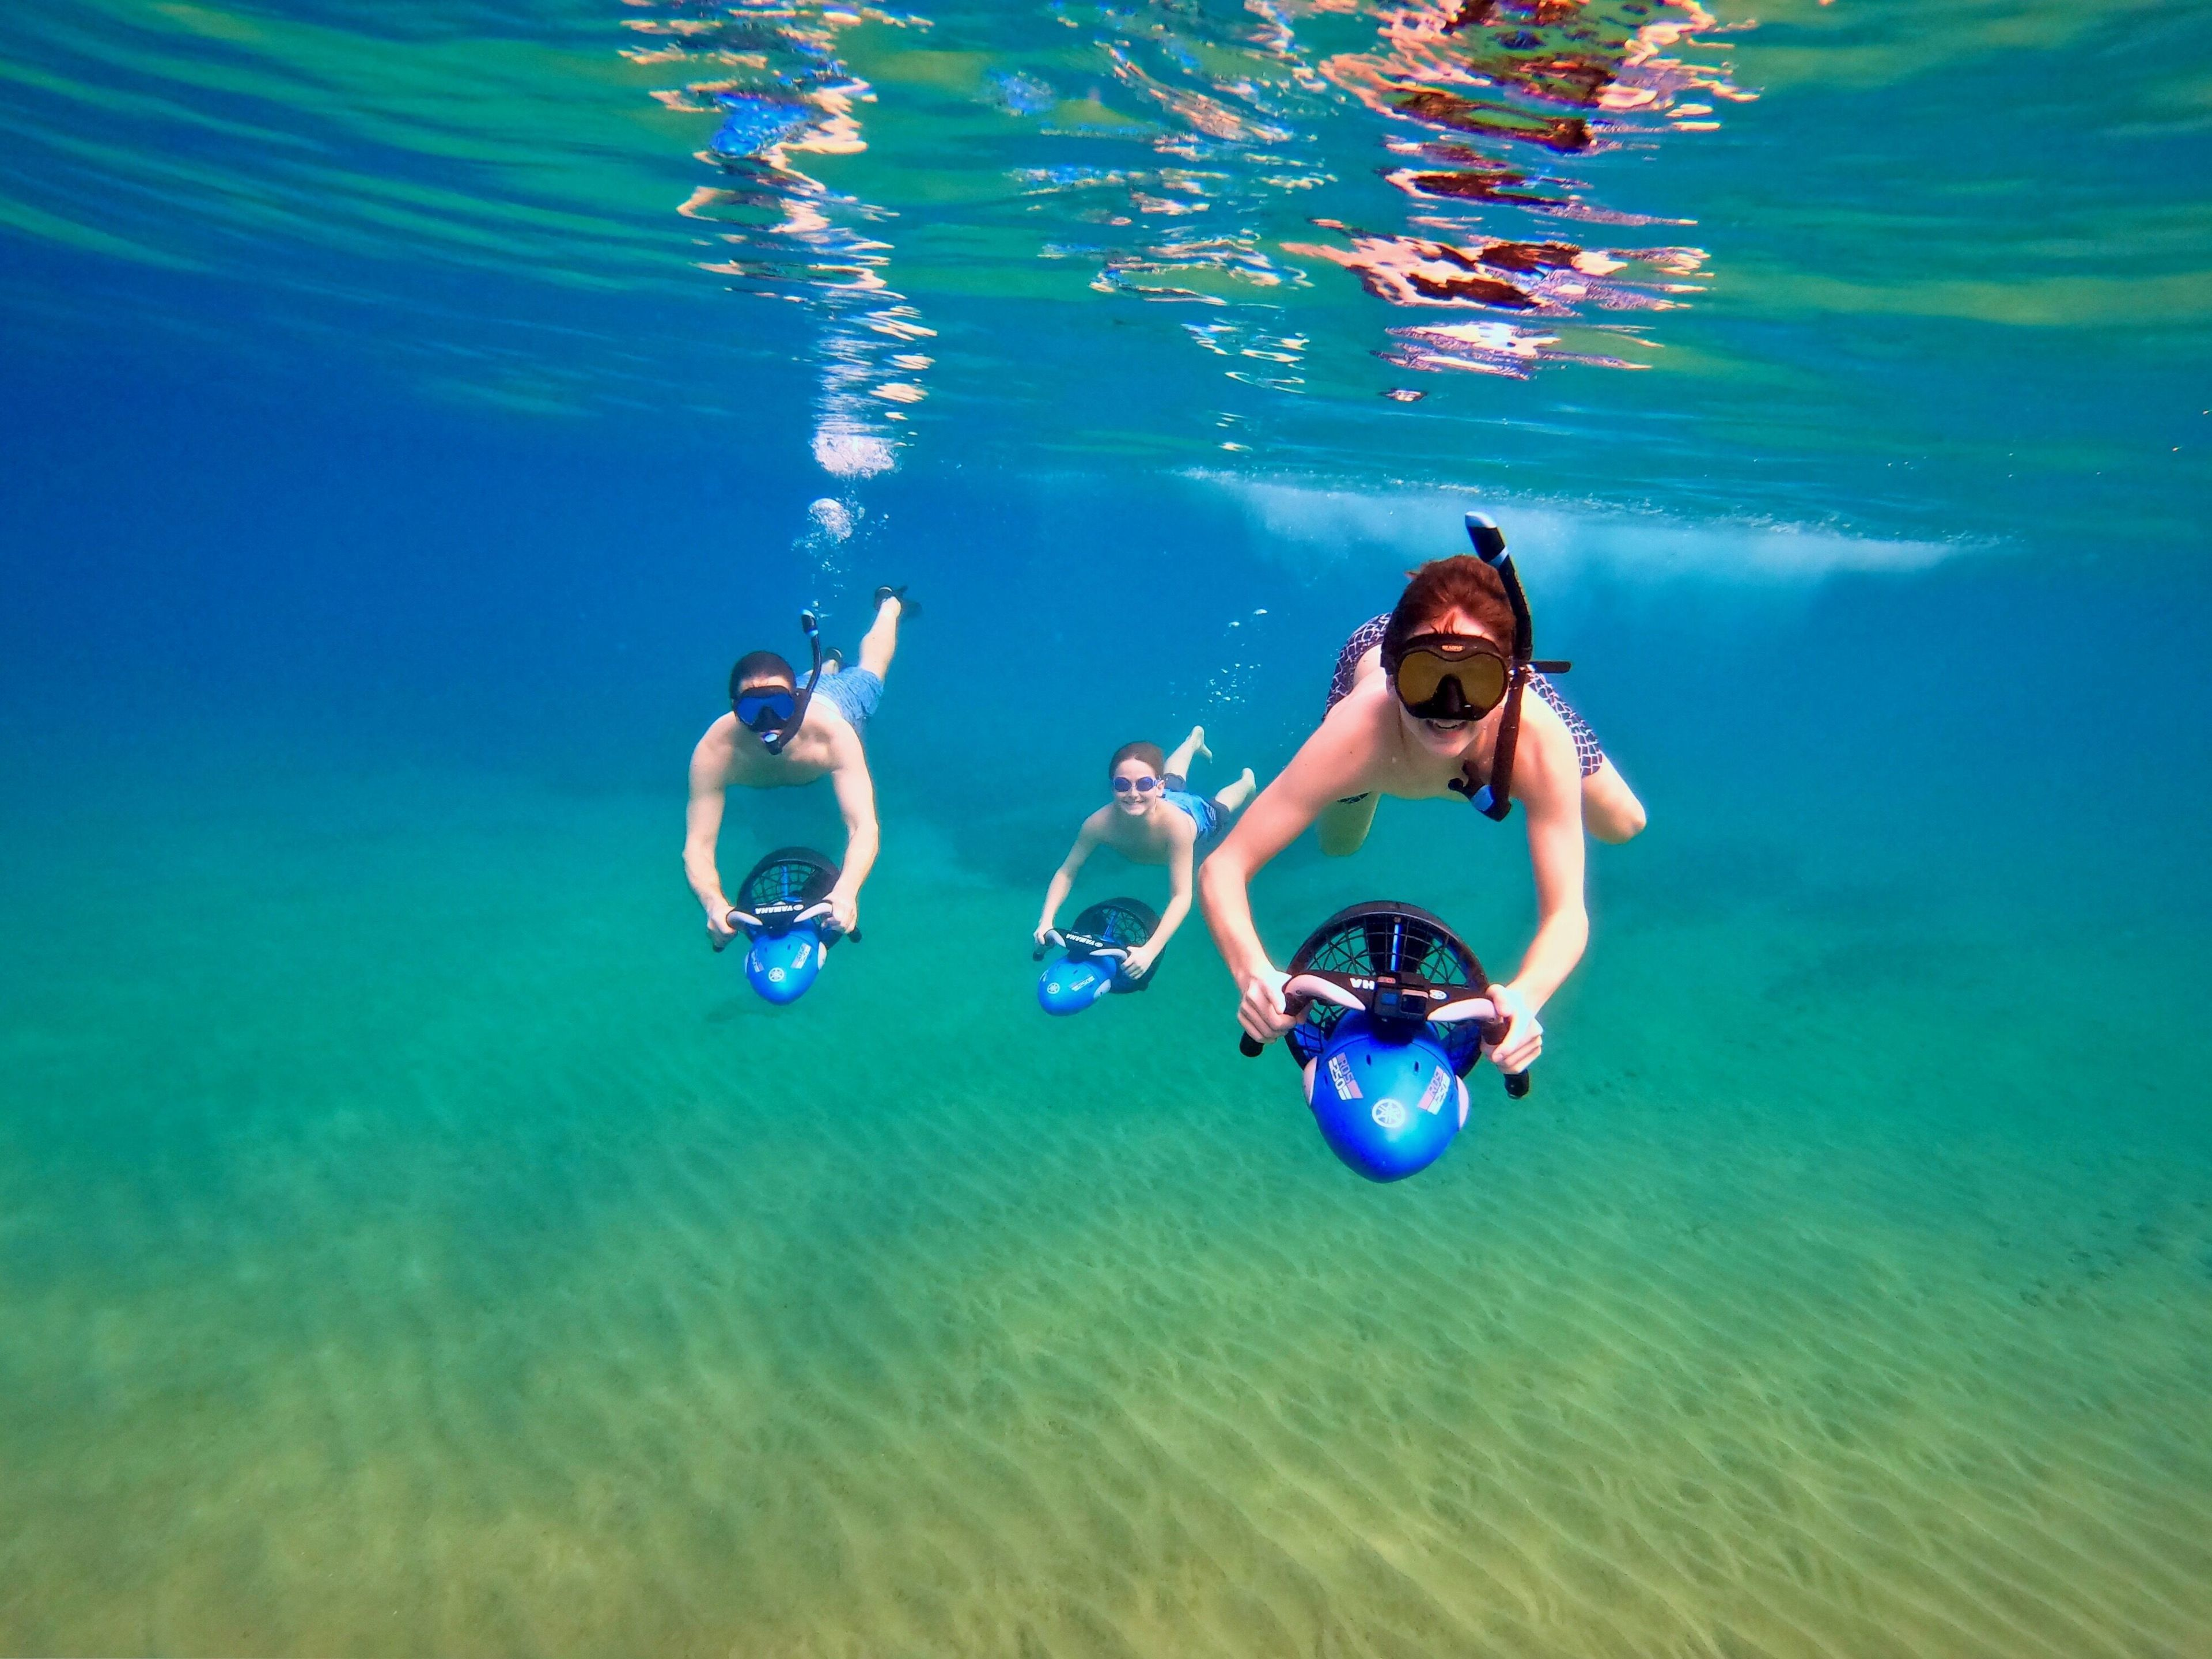 Under Water Adventure with Sea Scooters (Snorkeling)